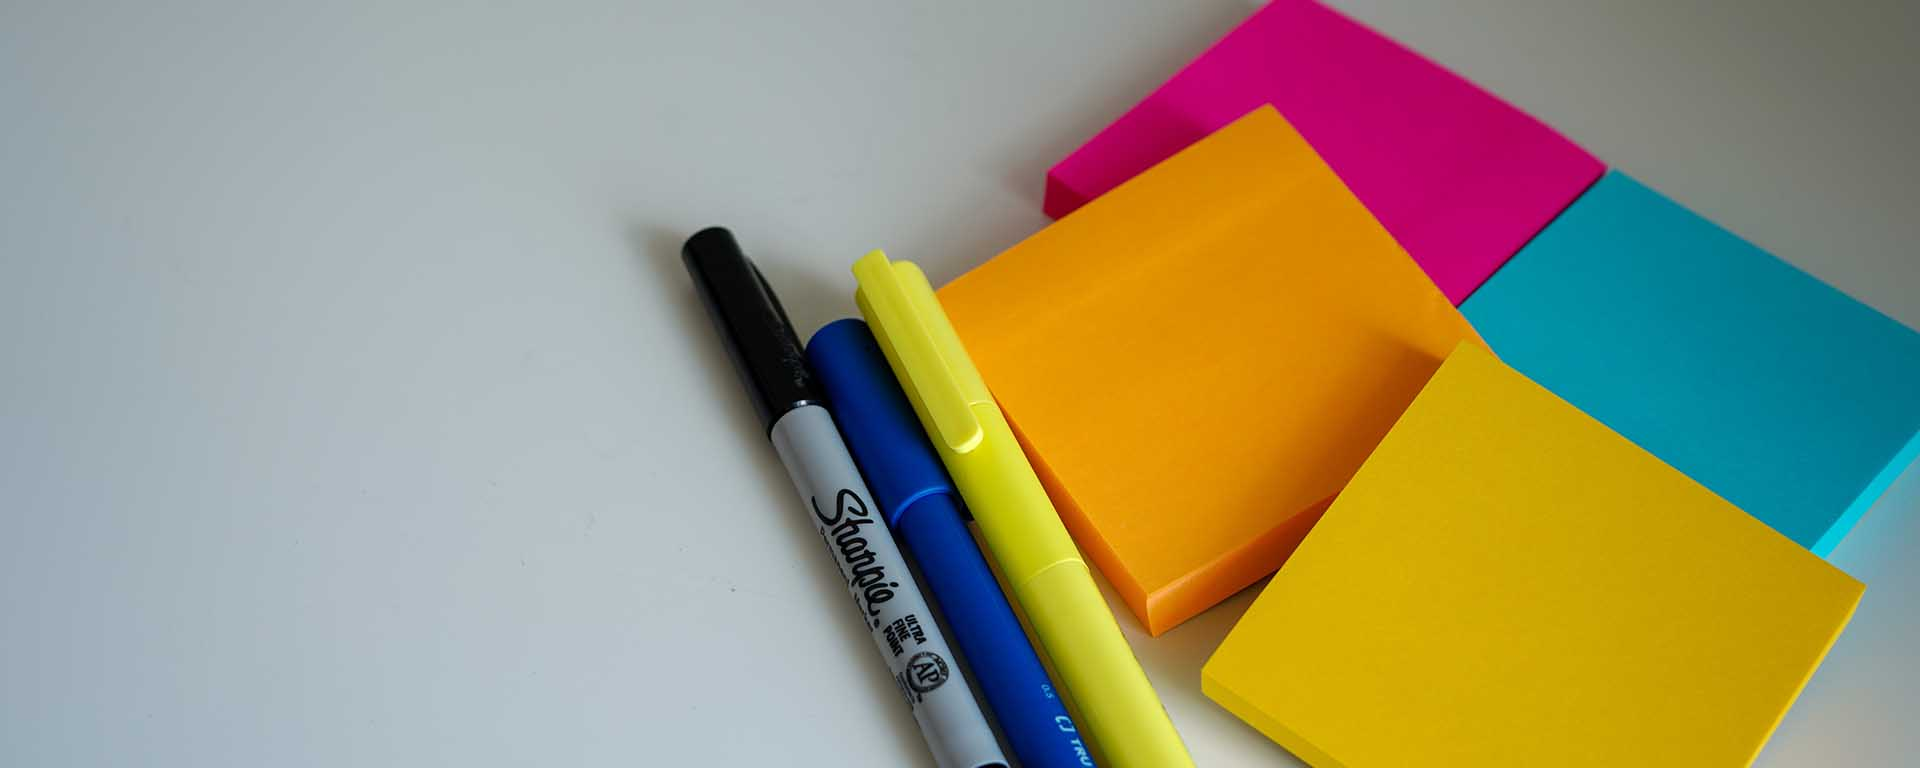 Colourful sticky notes, a Sharpie and highlighters on a blank table